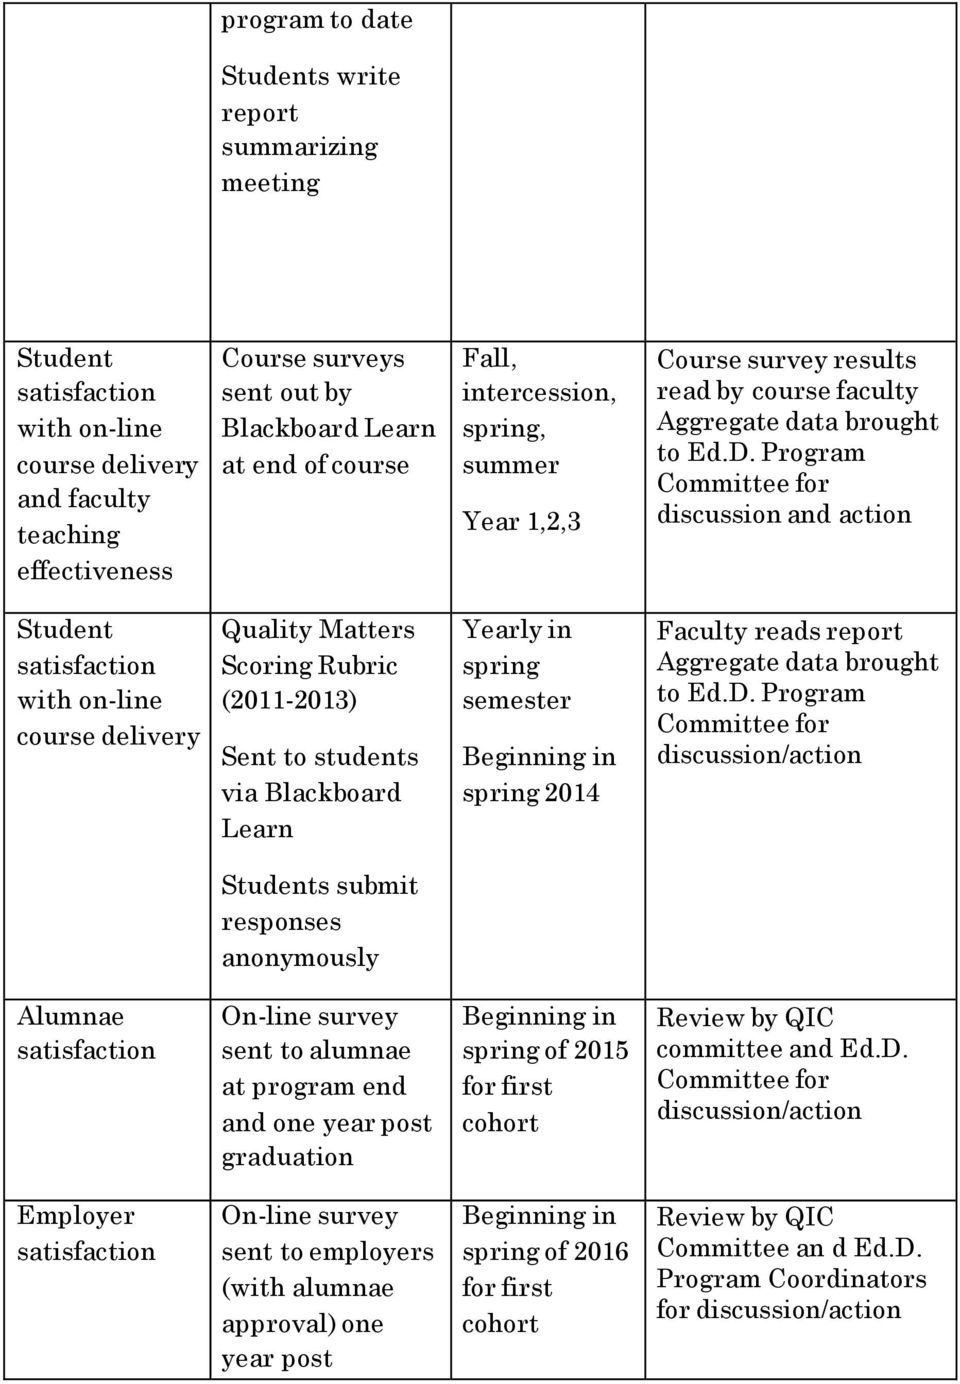 Program Committee for discussion and action satisfaction with on-line course delivery Quality Matters Scoring Rubric (2011-2013) Sent to students via Blackboard Learn Yearly in spring semester